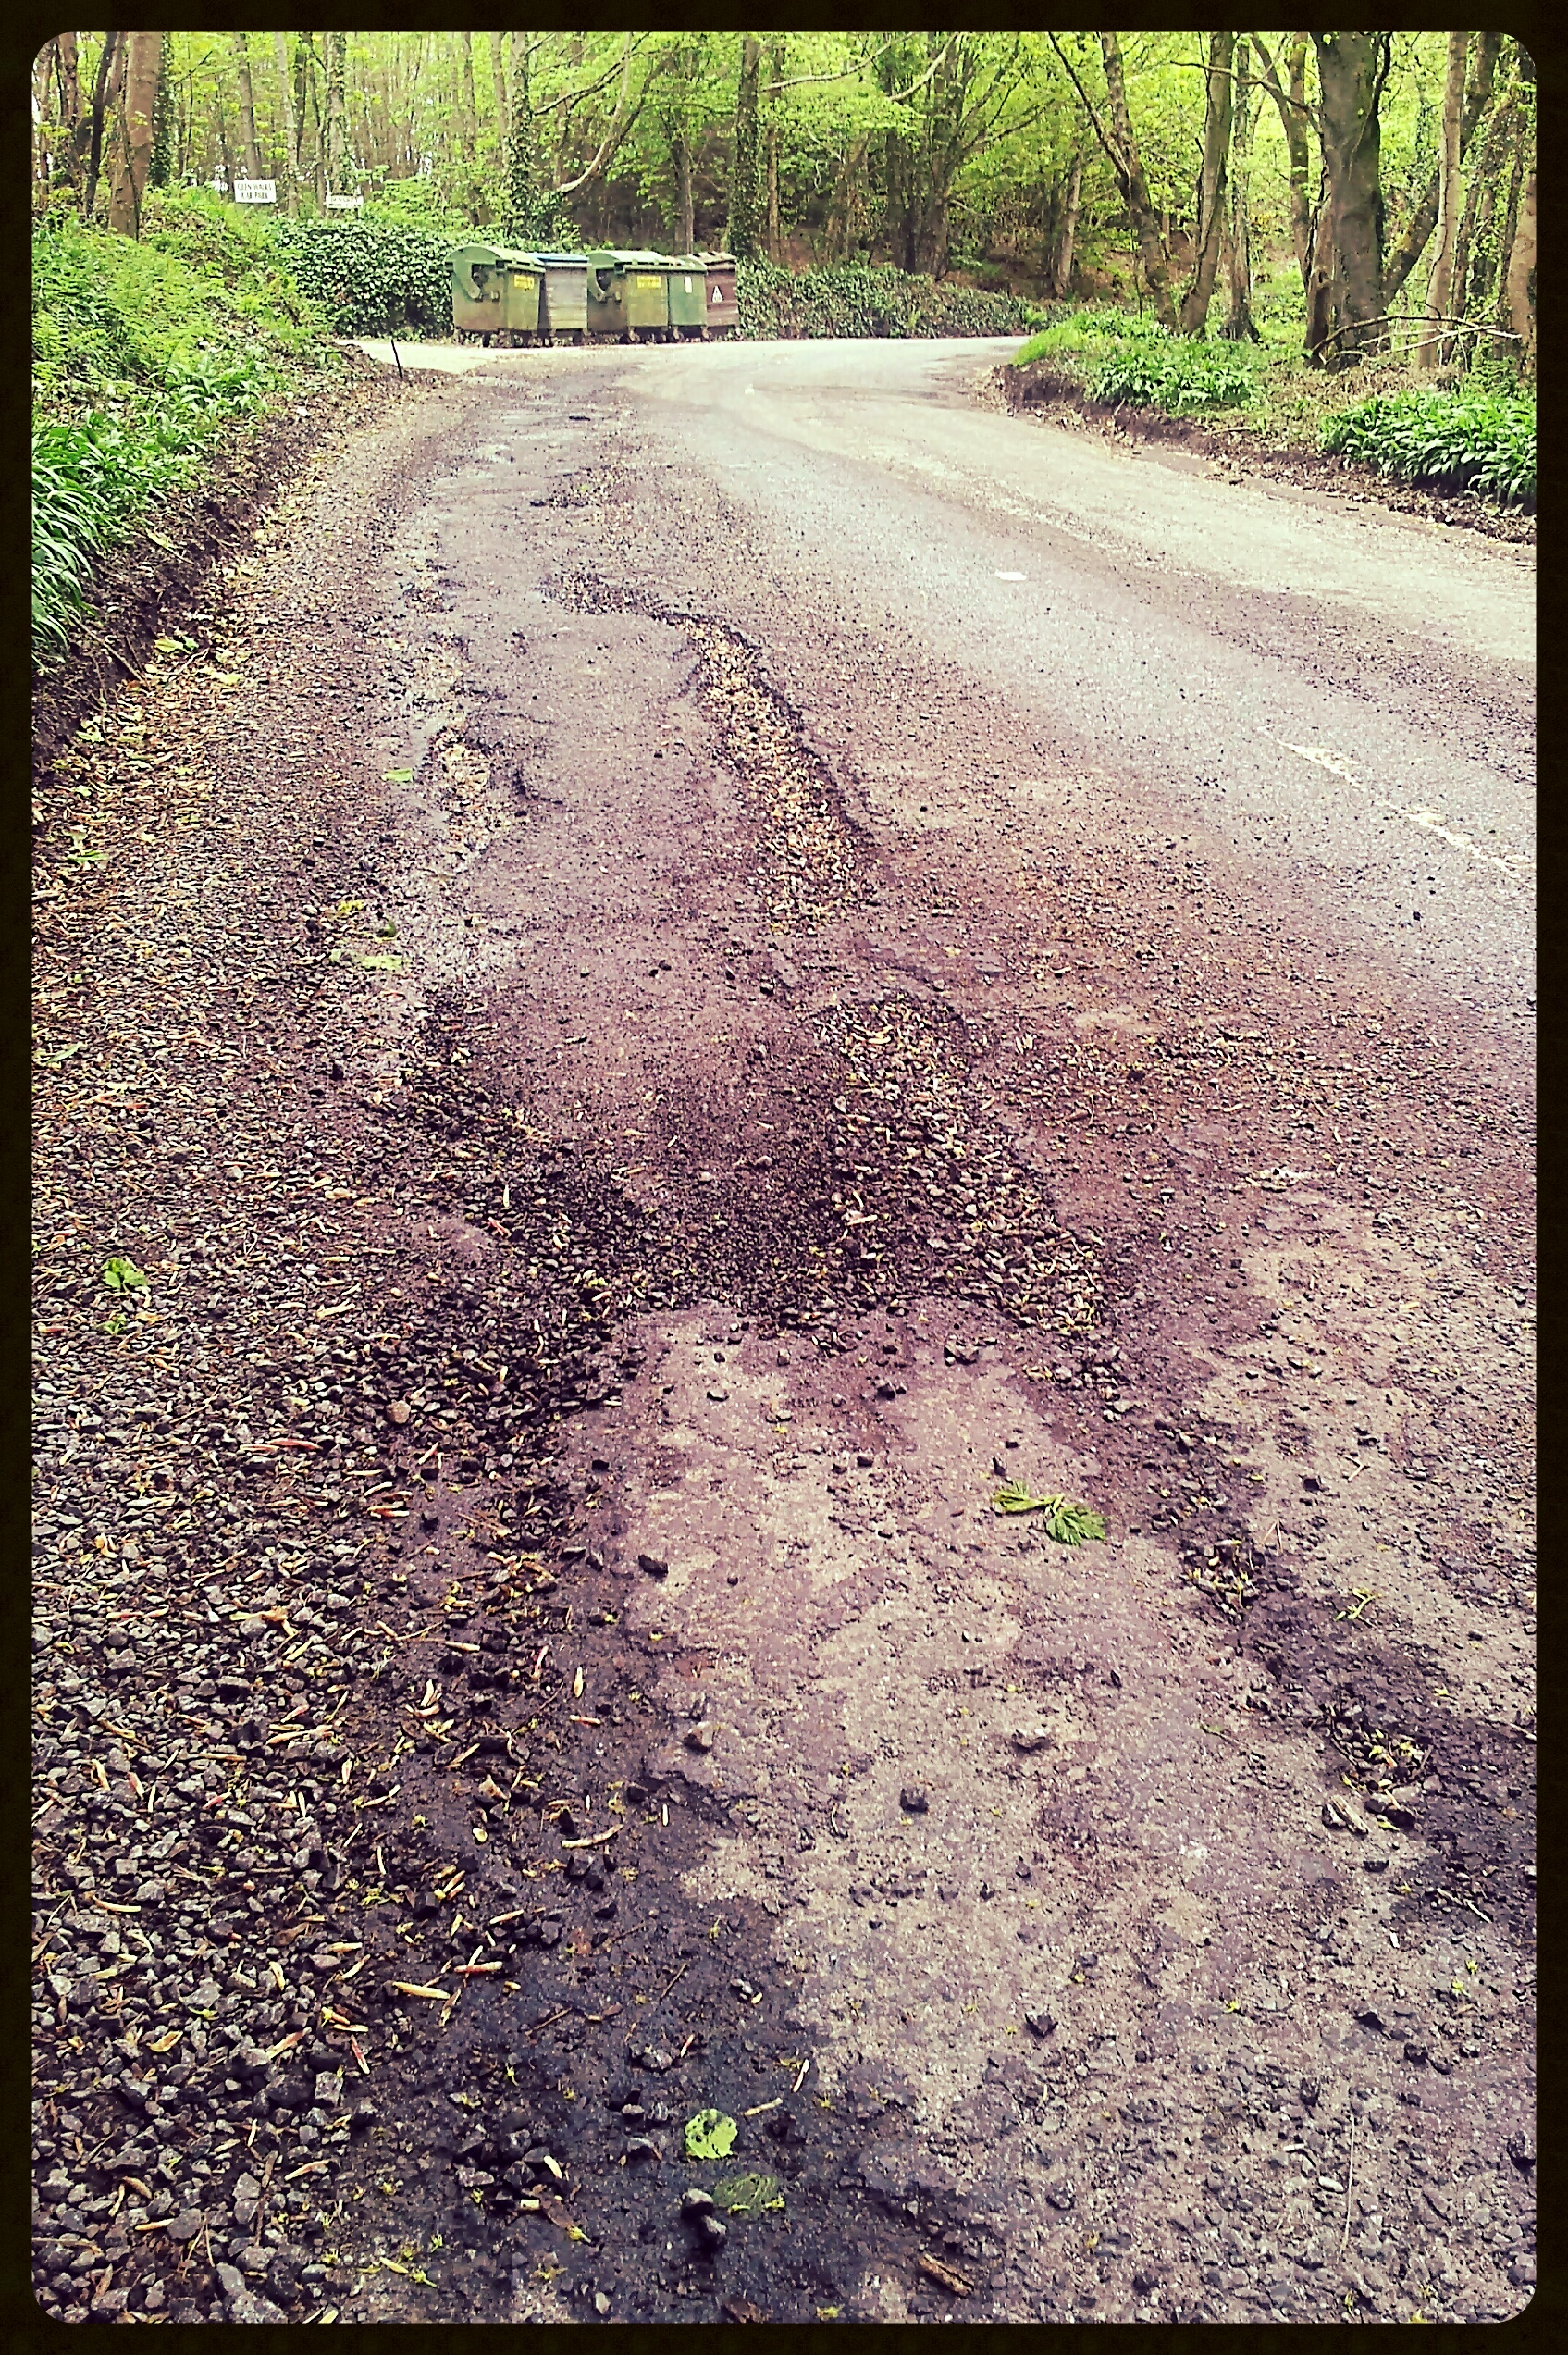 tarmac road surface showing serious erosion due to